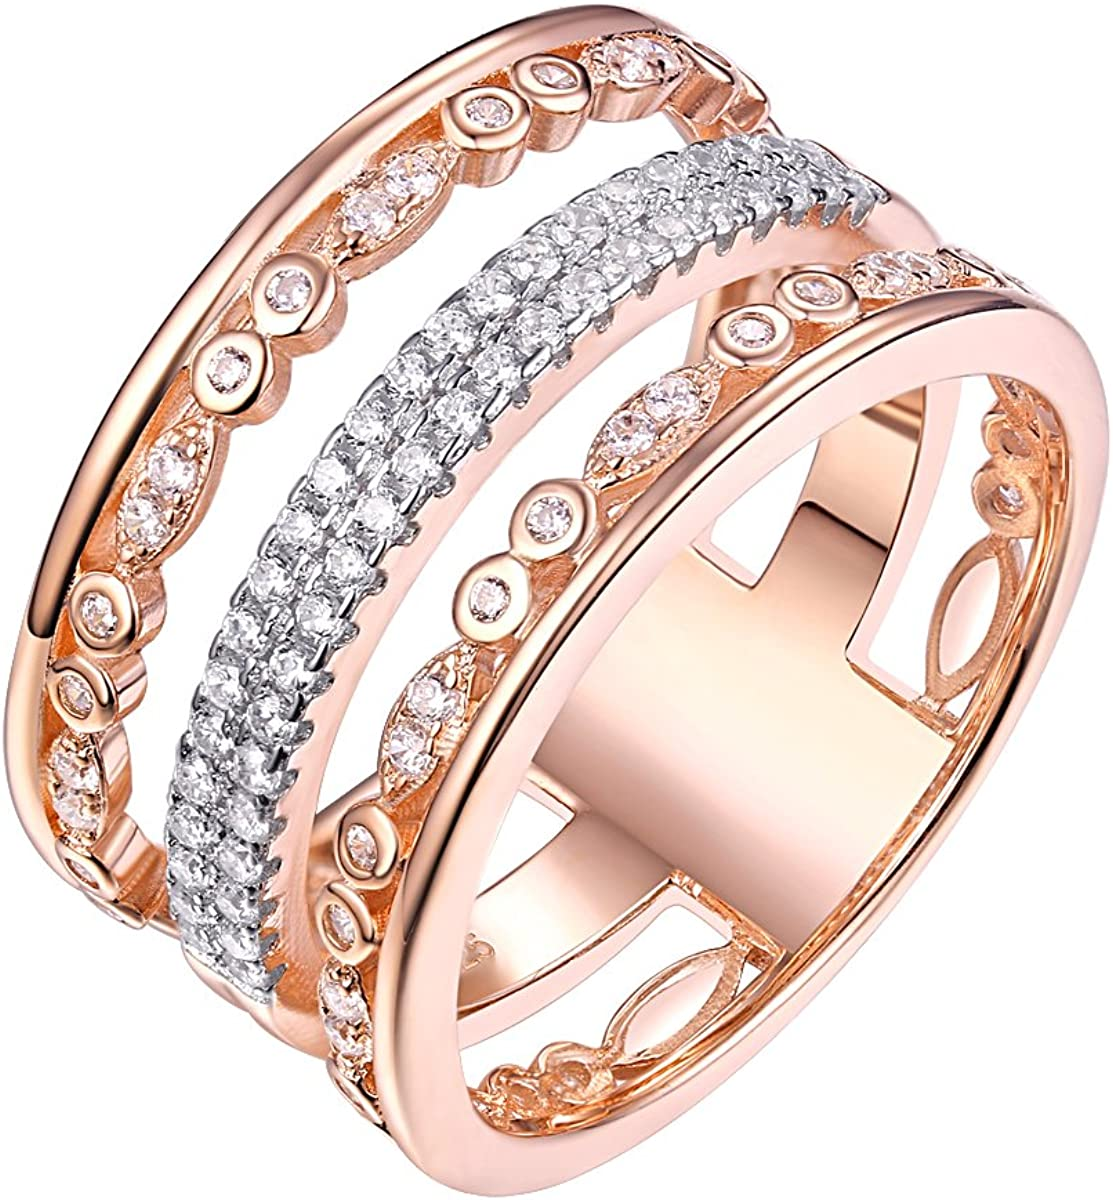 Newshe Wedding Bands for Women Eternity Rings Rose Gold Sterling Silver Cubic Zirconia 9mm Size 5-10